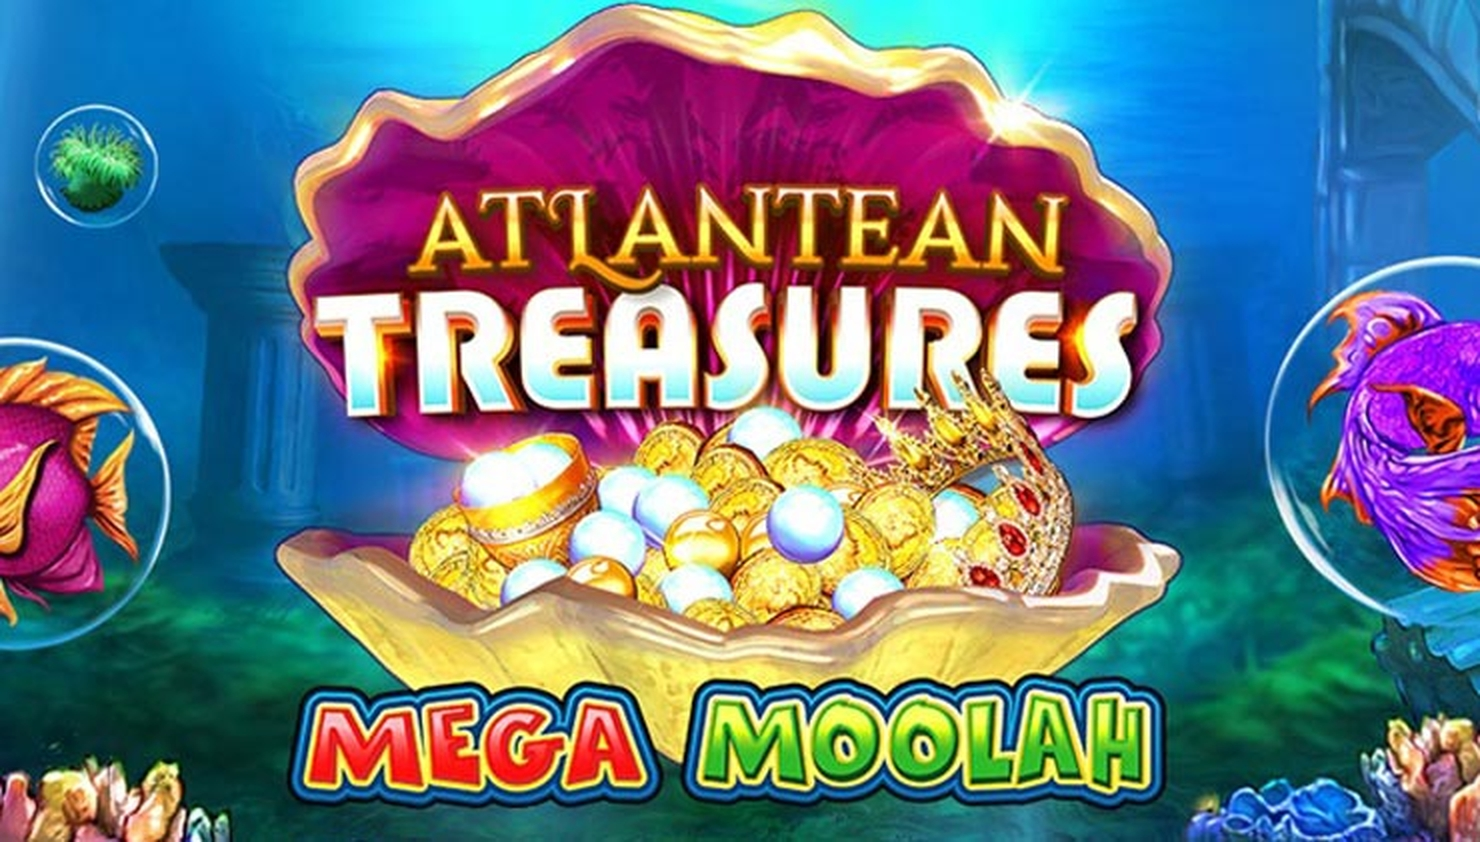 The Atlantean Treasures Mega Moolah Online Slot Demo Game by Neon Valley Studios